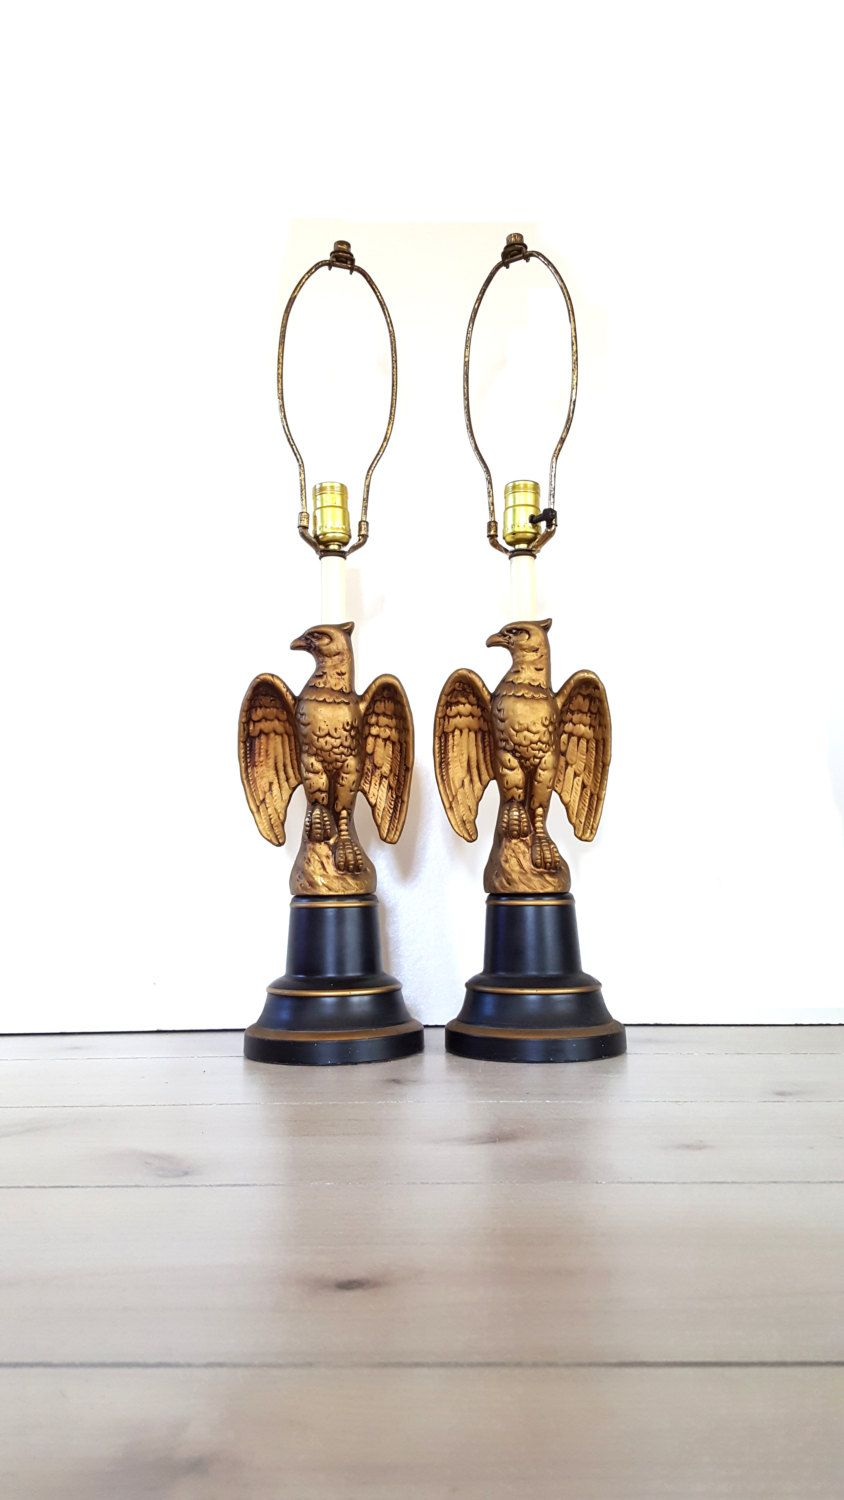 Pair Eagle Lamps Black And Gold American Bald Eagle Table Lamps Federal Eagle Americana Patriotic Decor Vintage Black Lamps American Bald Eagle Gold